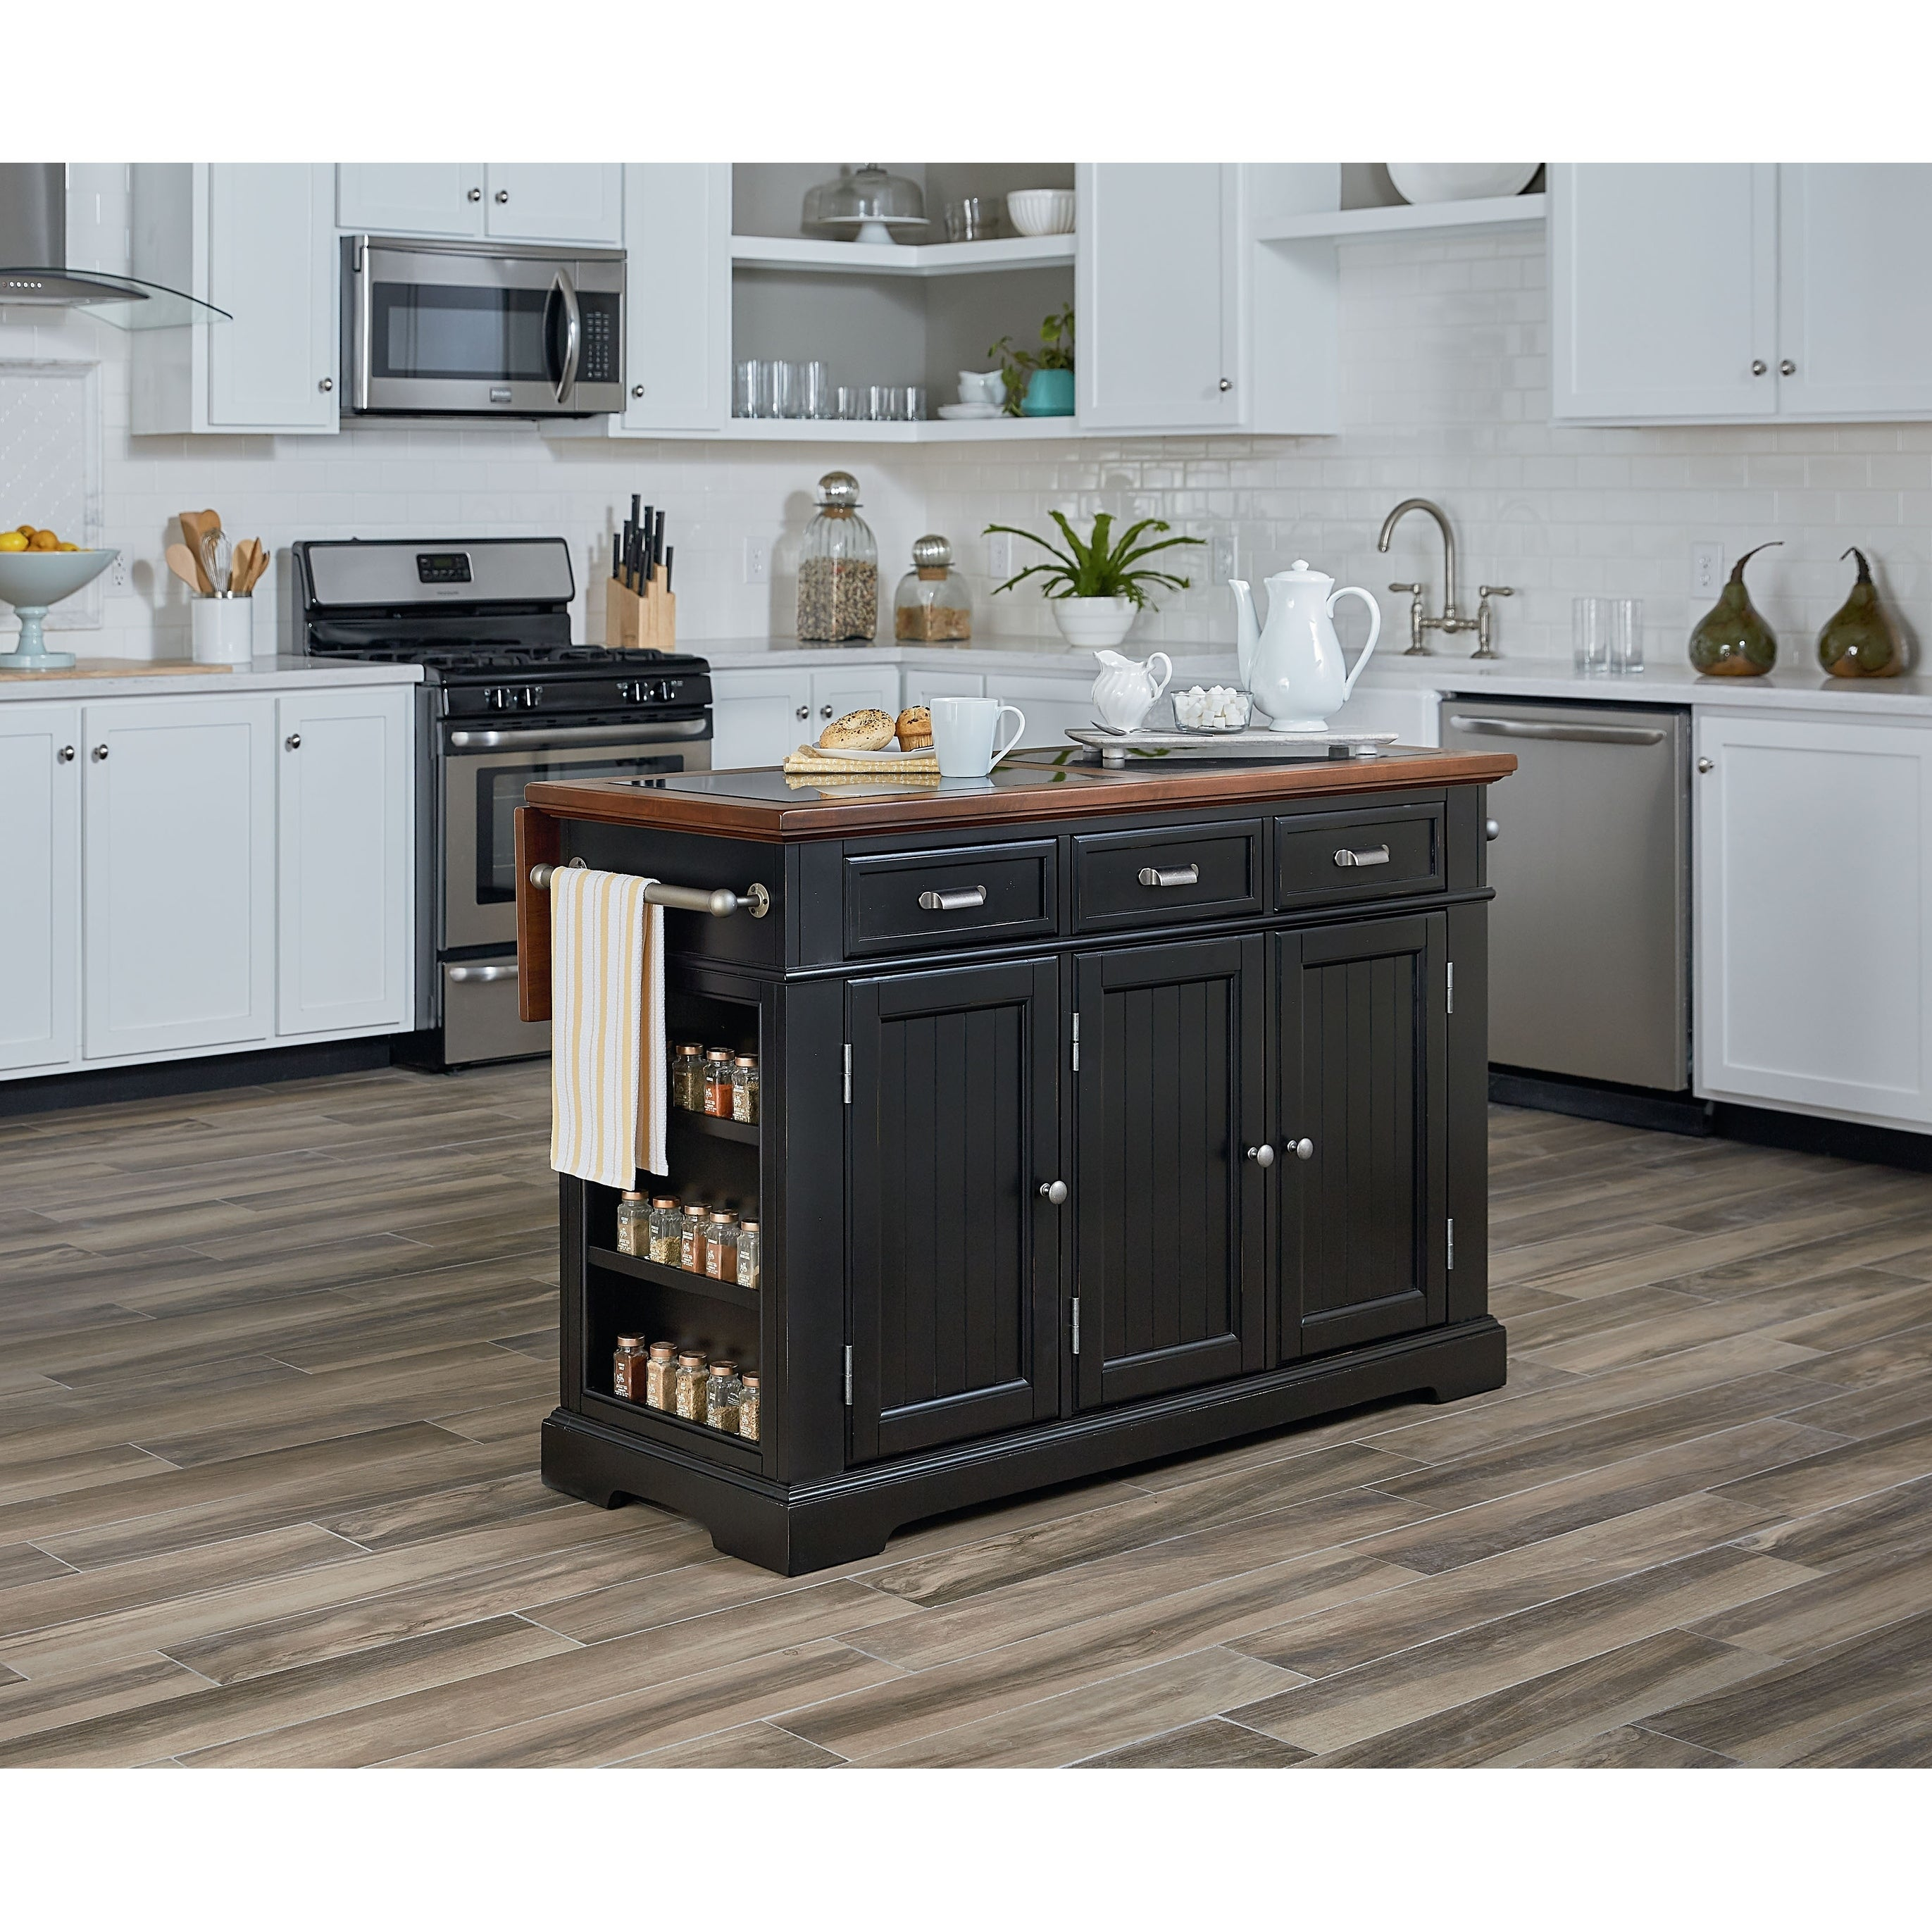 Osp Home Furnishings Farmhouse Basics Kitchen Island In Black Finish With Vintage Oak And Granite Top